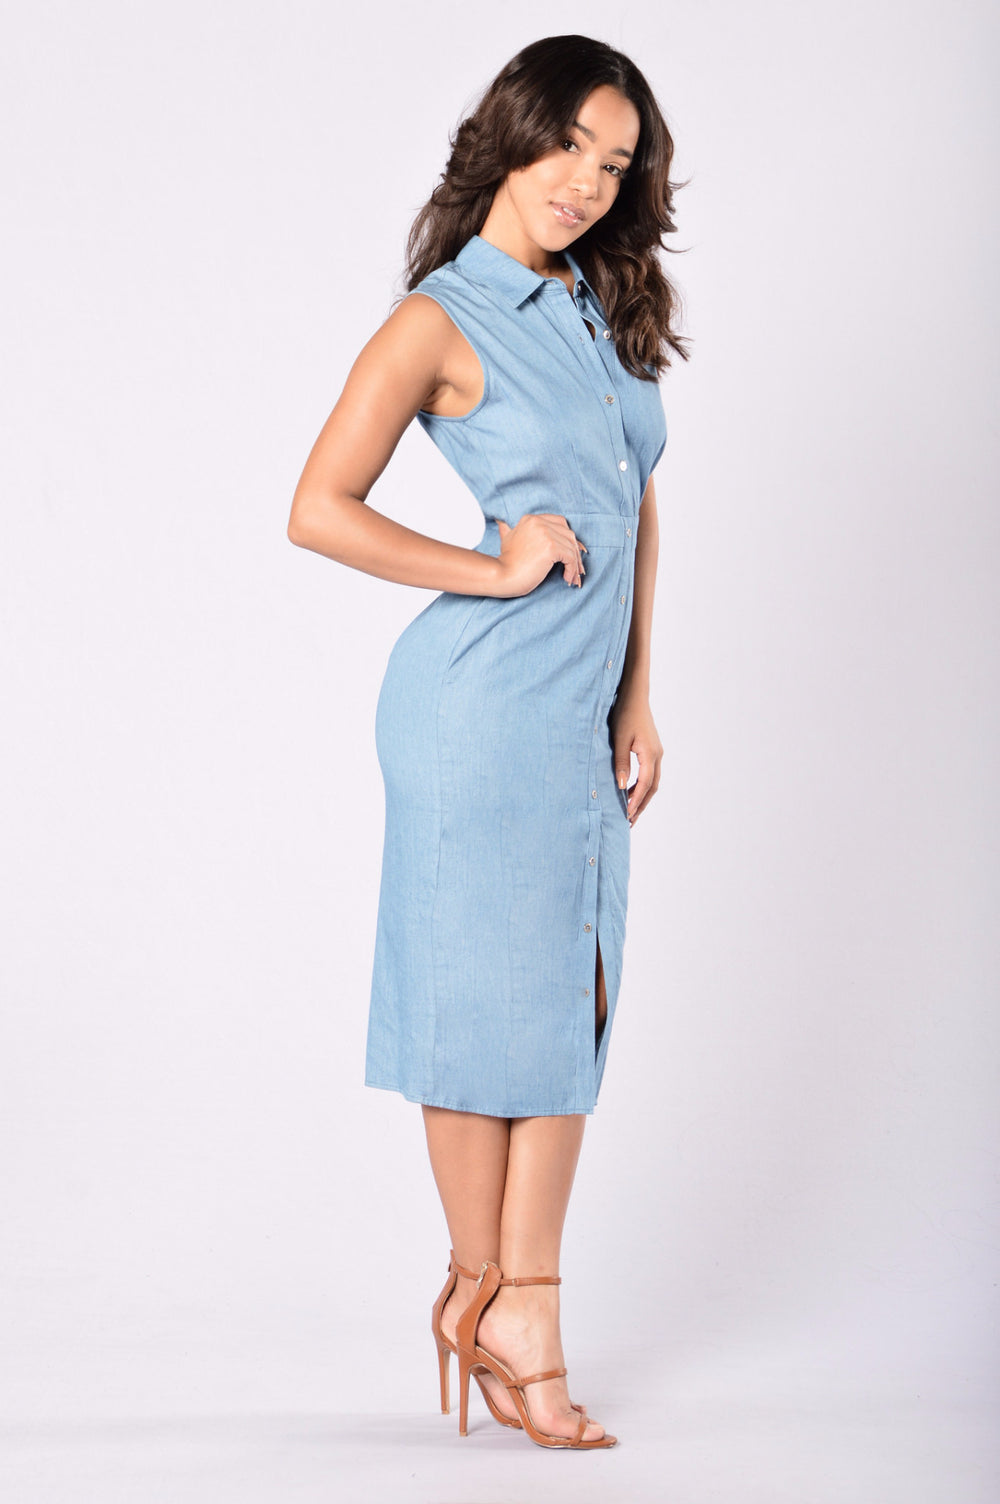 Feeling Blue Dress - Denim